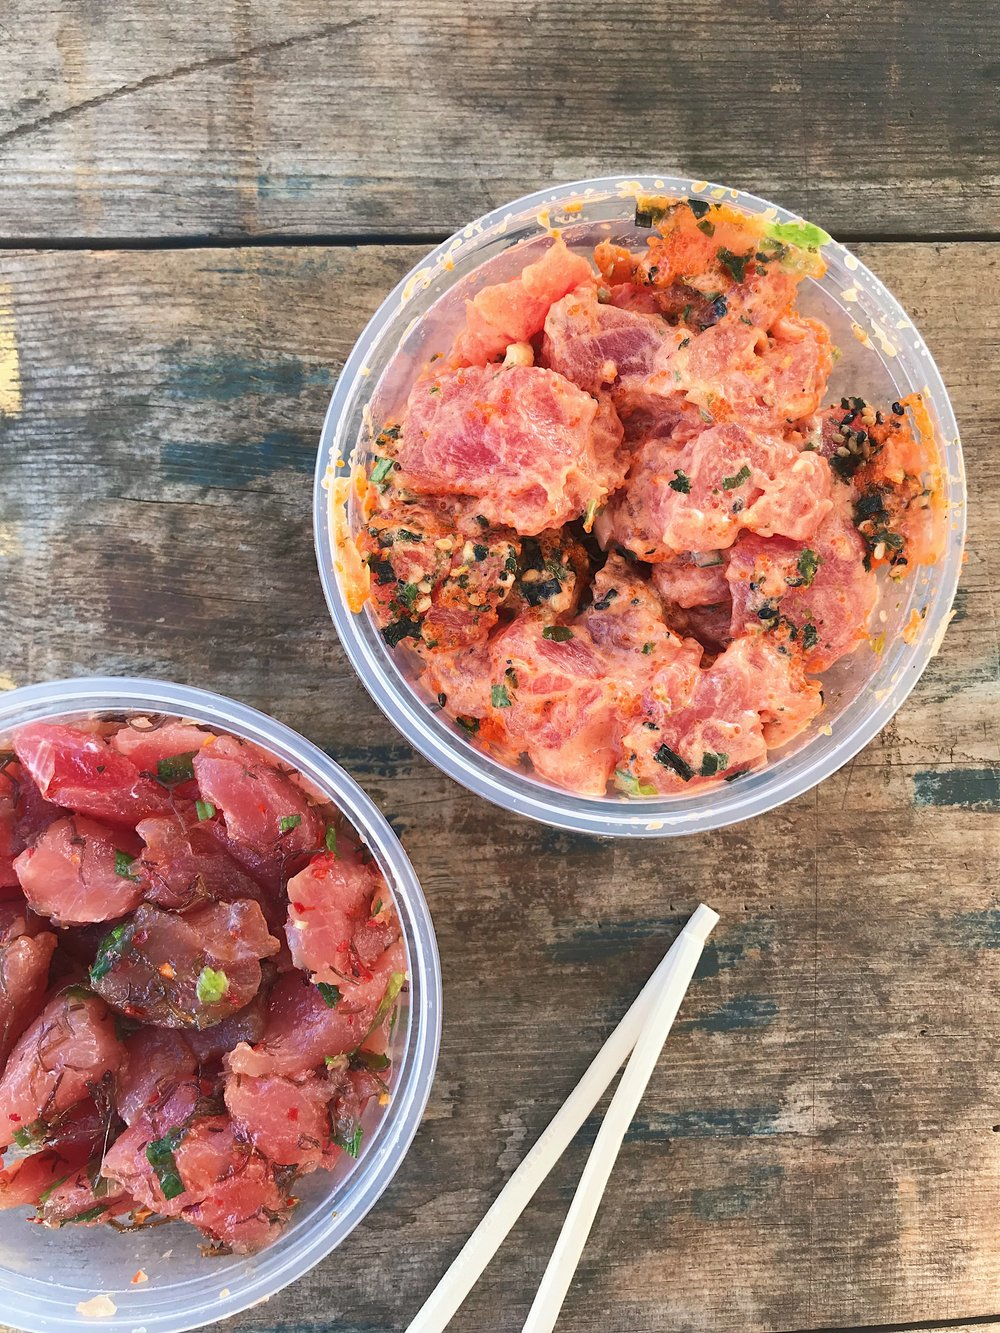 Ishihara Market - They have a great deli for poke! So many gluten free options and the price is great! I also had a custom order Musubi here - the only place we could find gluten free Musubi on the Island!